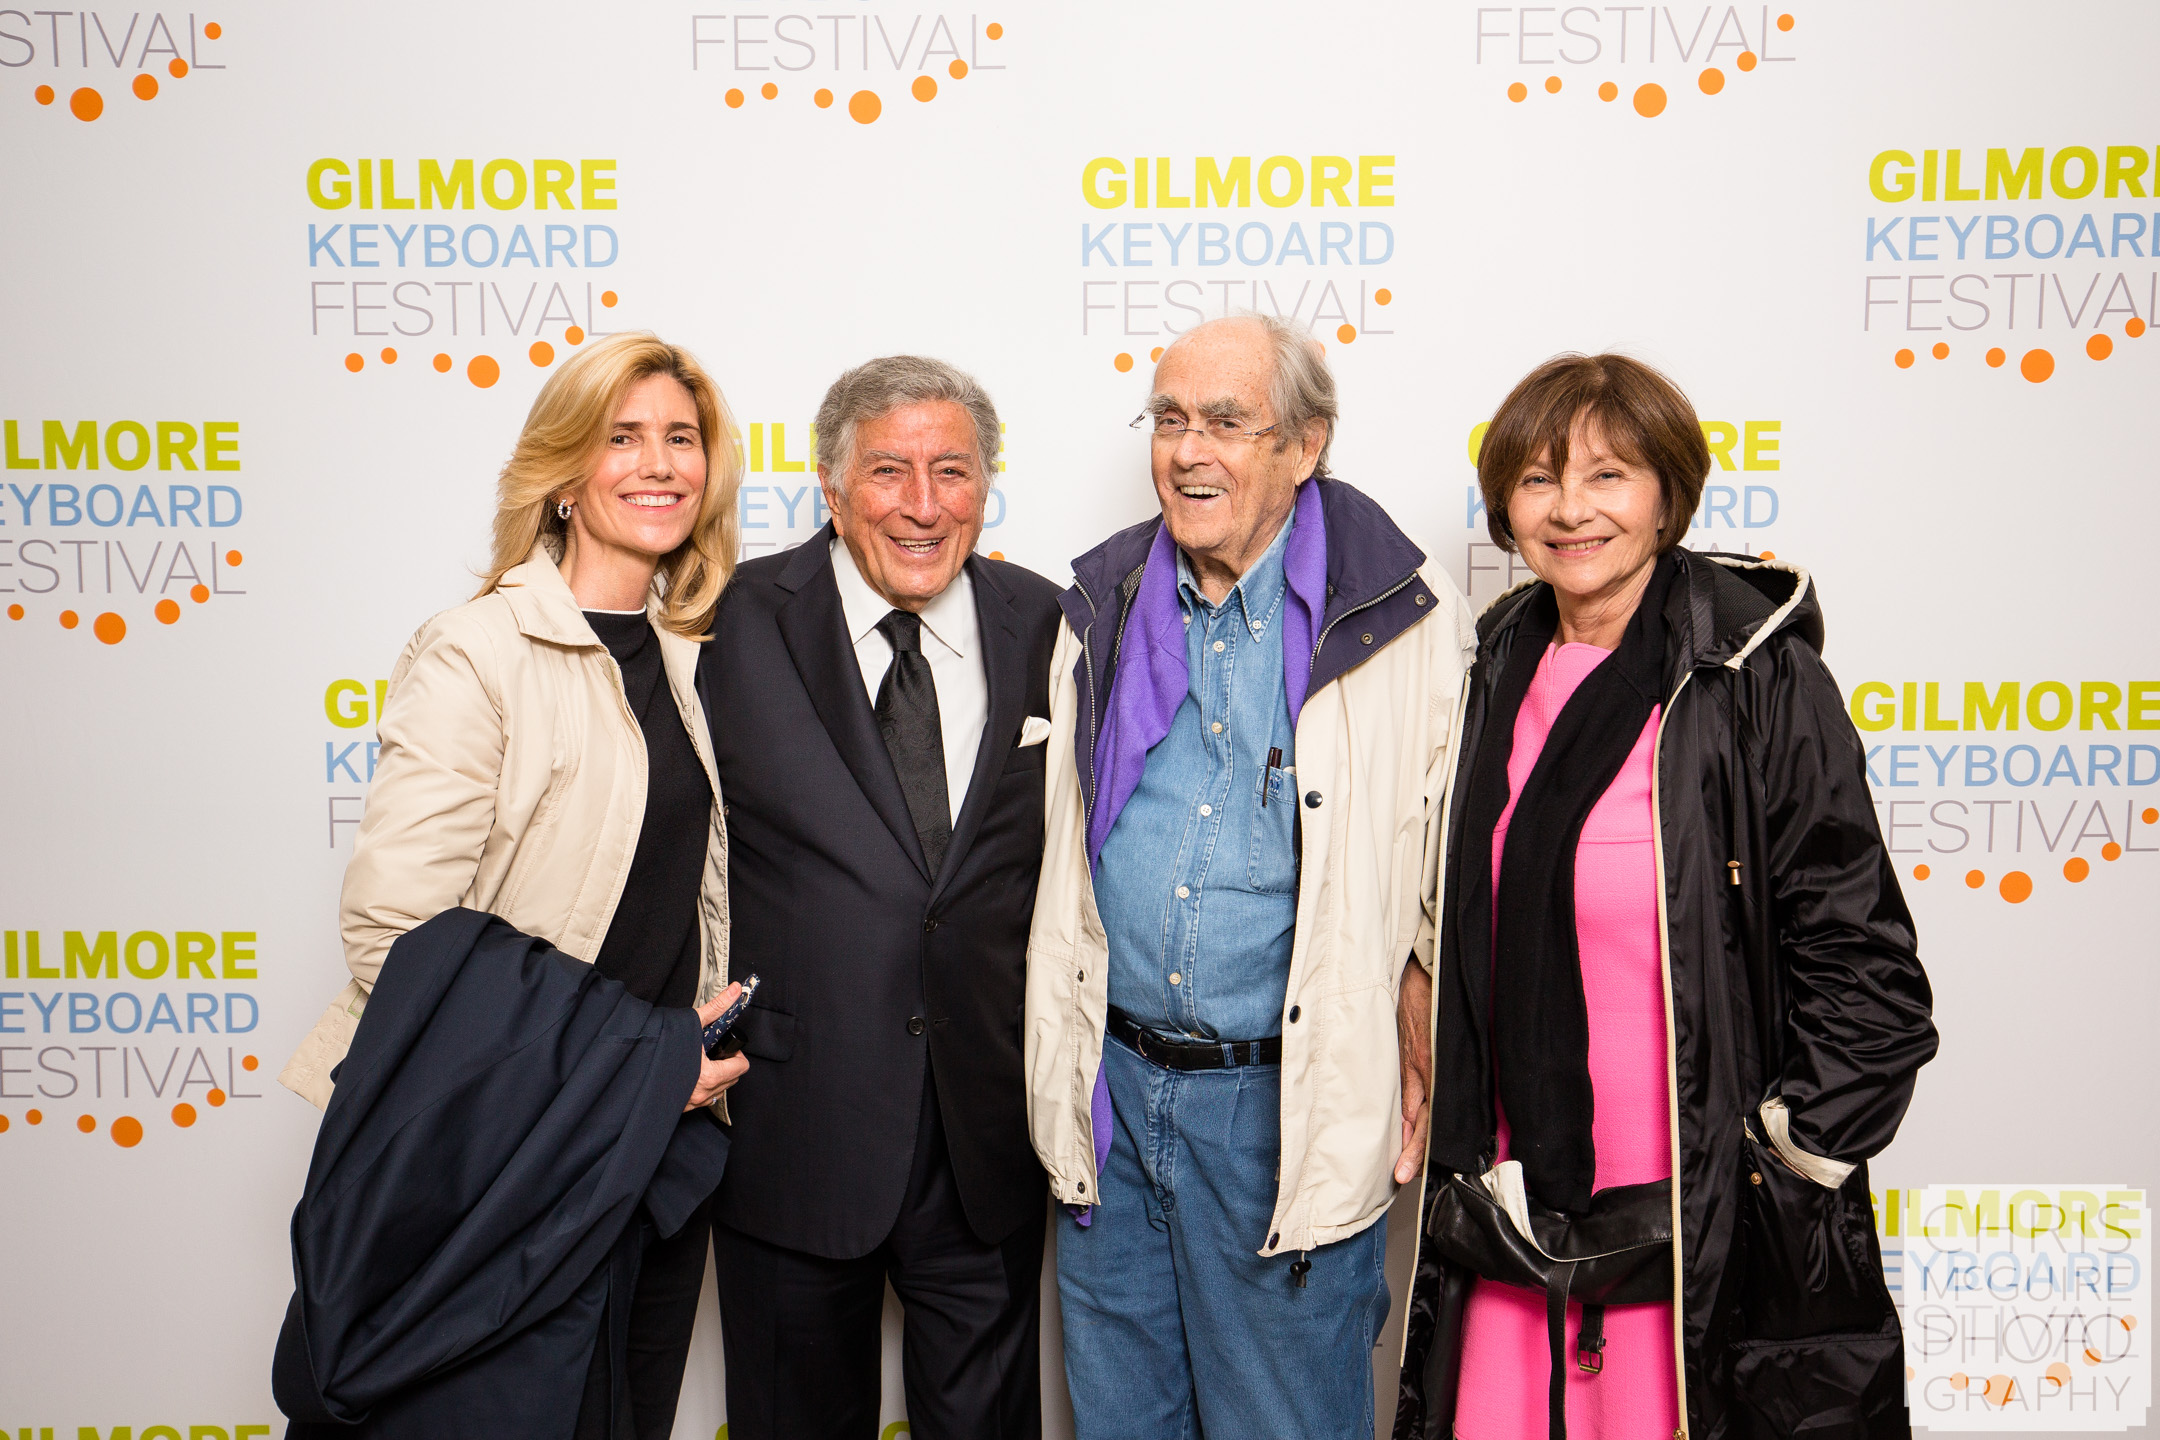 Tony Bennett and Michel Legrand backstage at The Gilmore